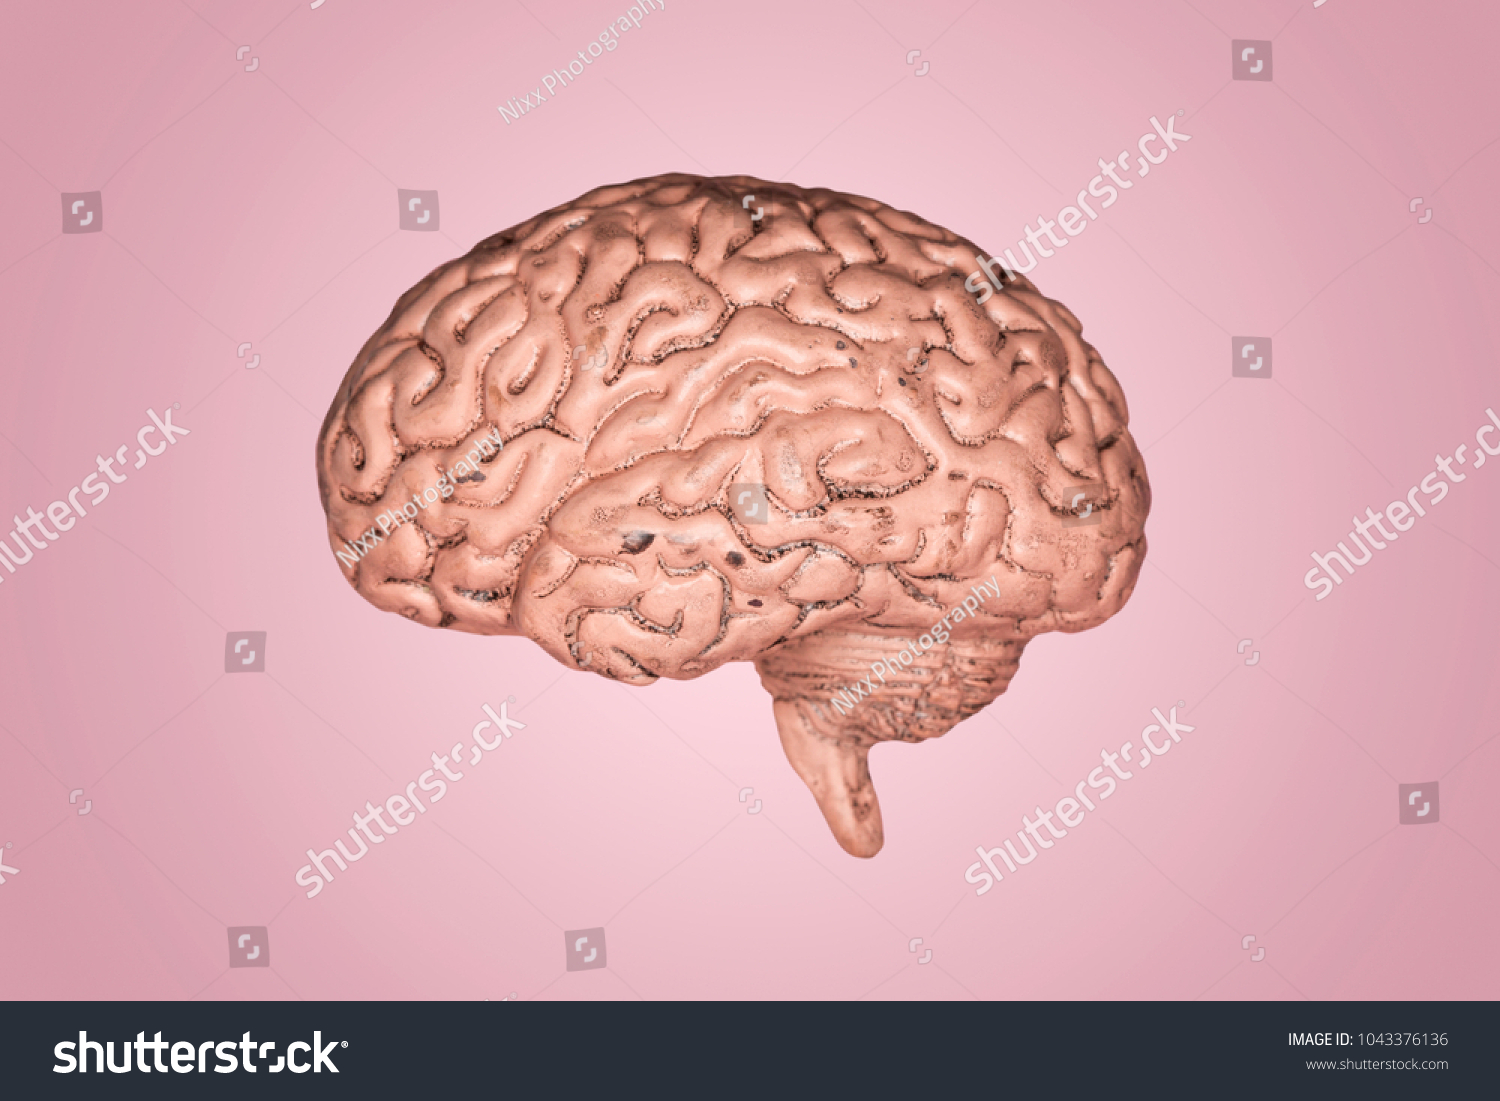 A Human Brain Part Of Anatomy Human Body Model With Organ System